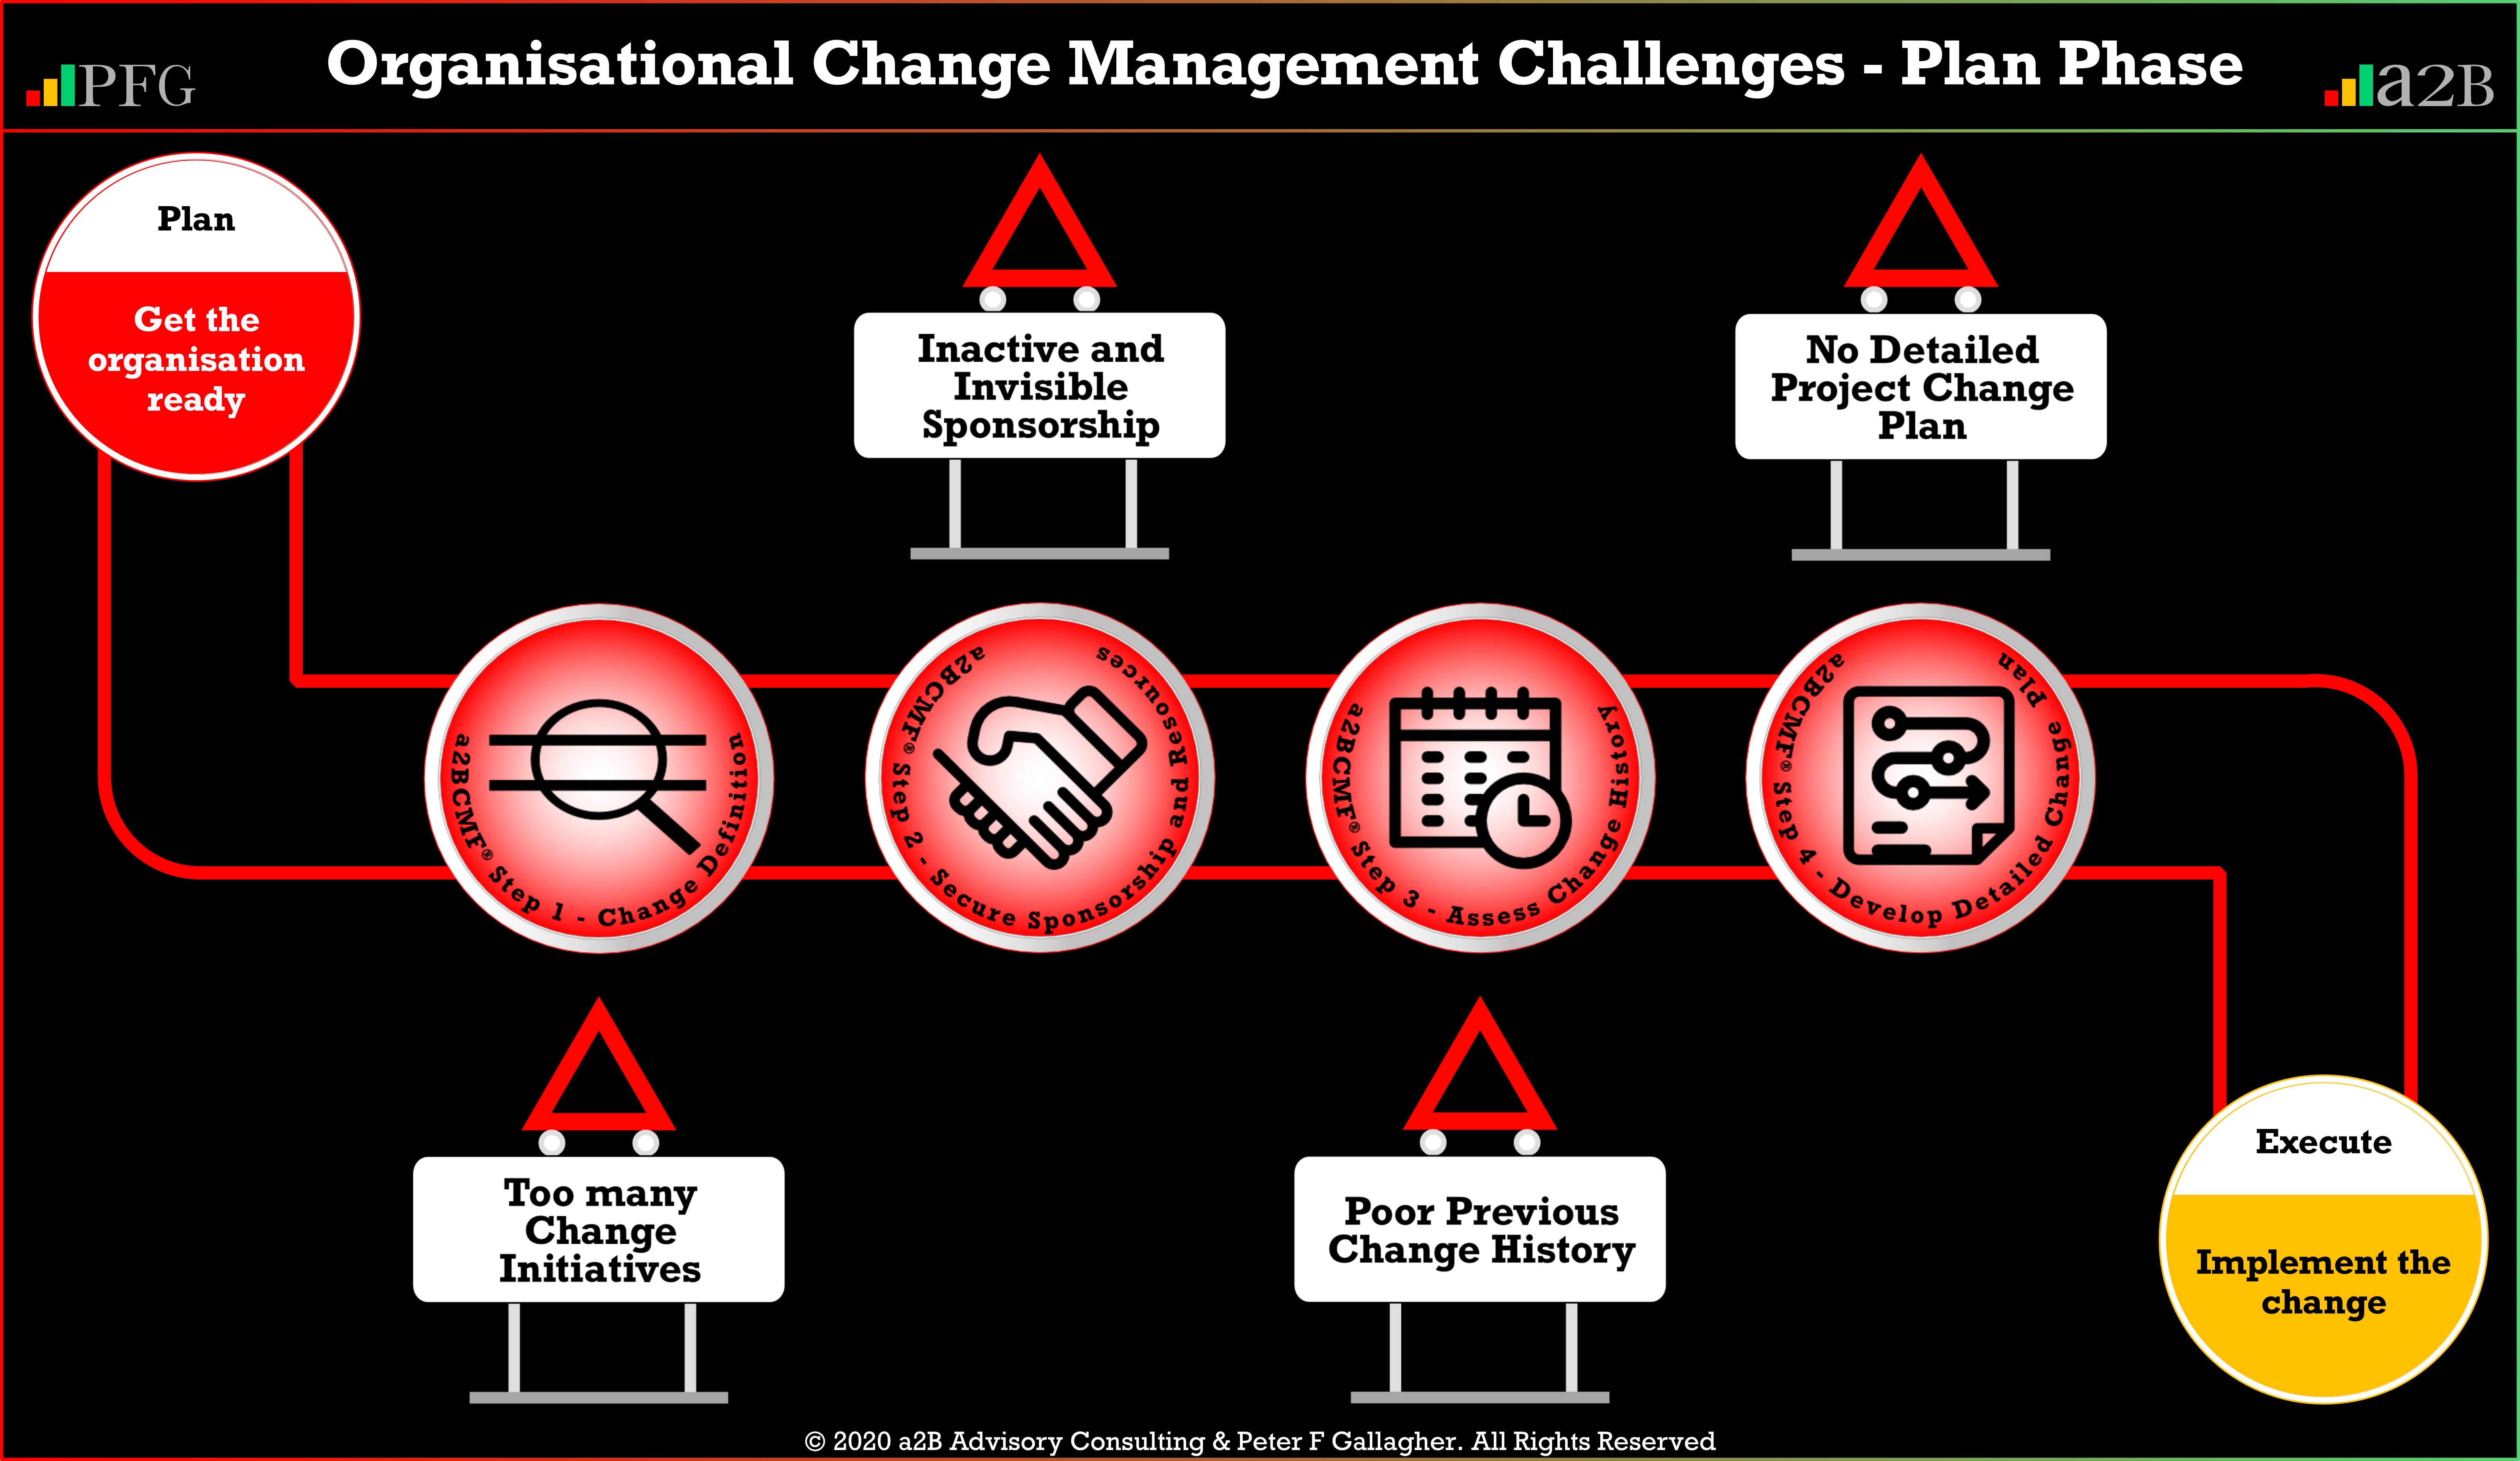 SEO Post Change Challeneges Kin 20200821